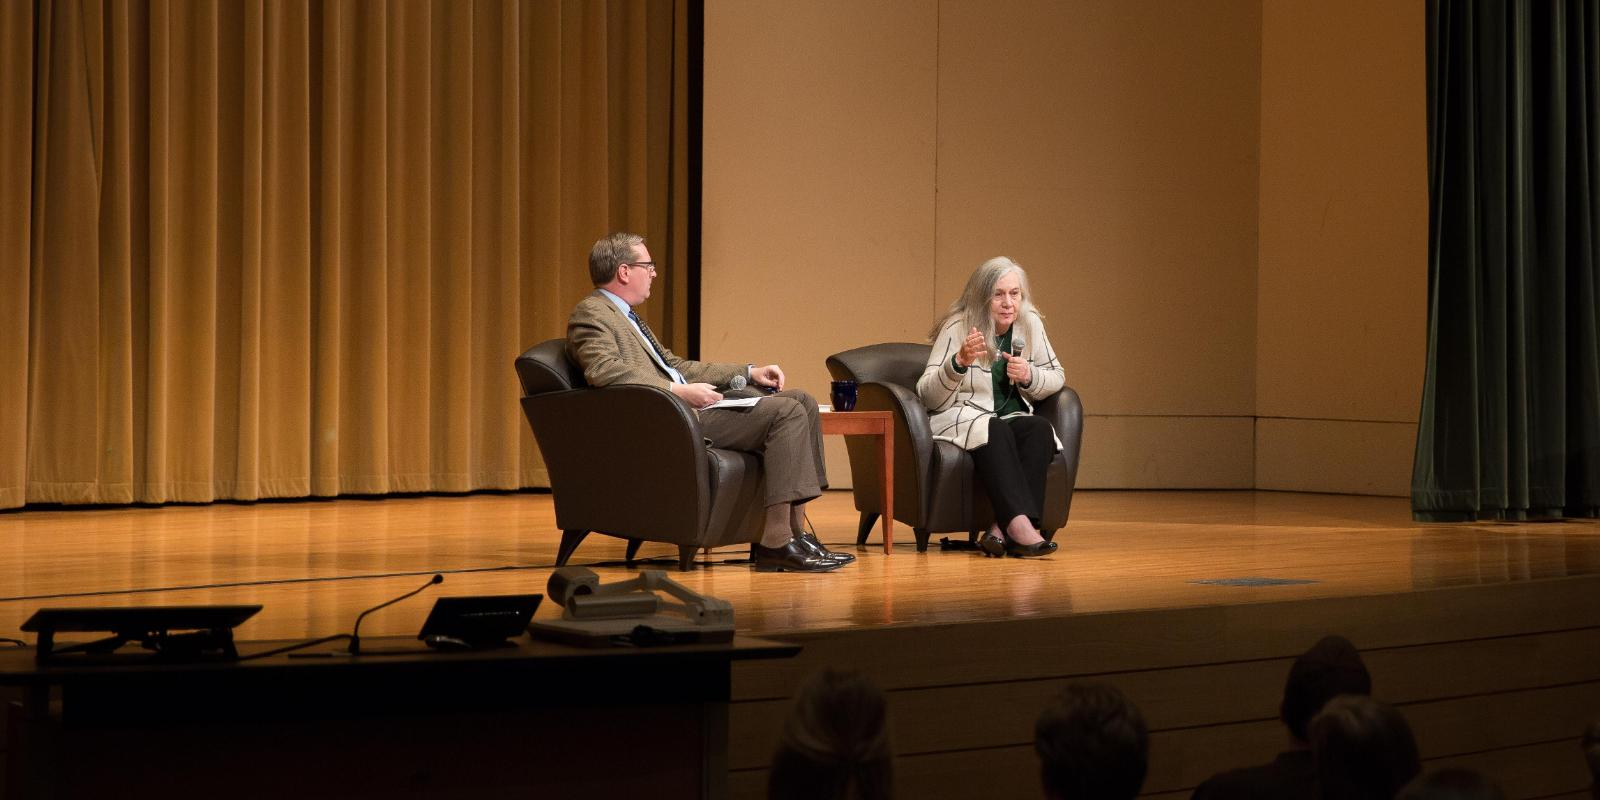 Marilynne Robinson and Dr. Ryken at Theology Conference Event